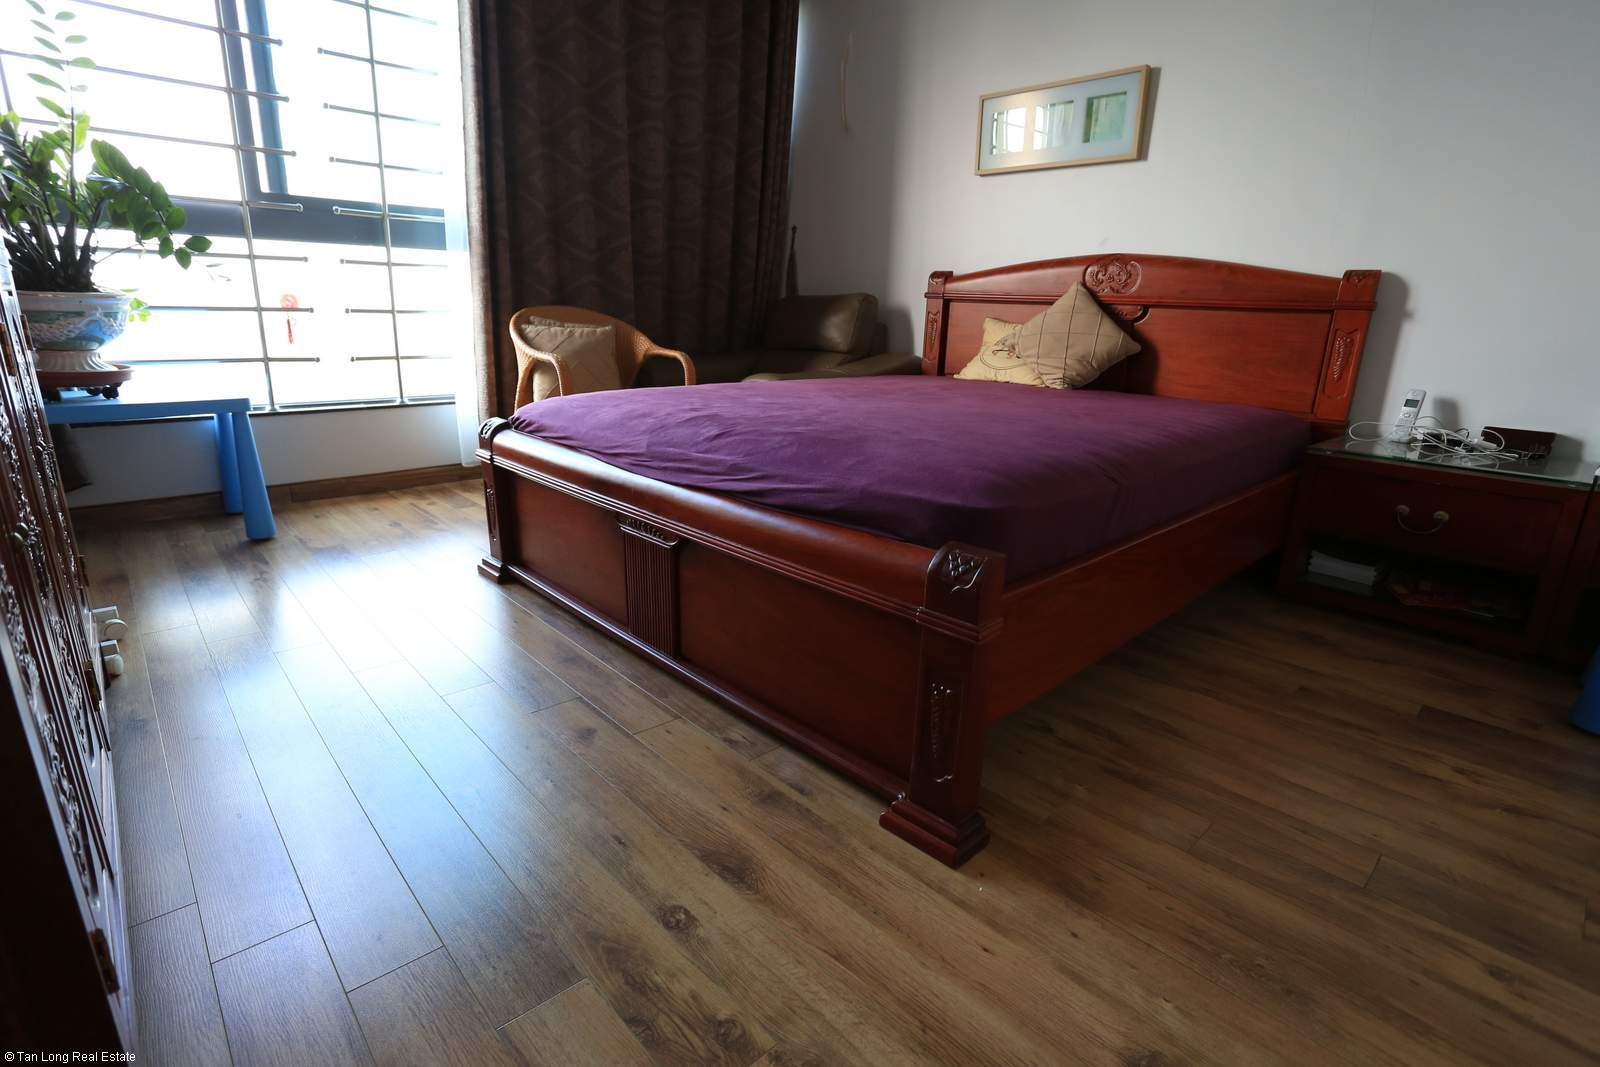 3 bedroom apartment in 671 Hoang Hoa Tham rental. 7